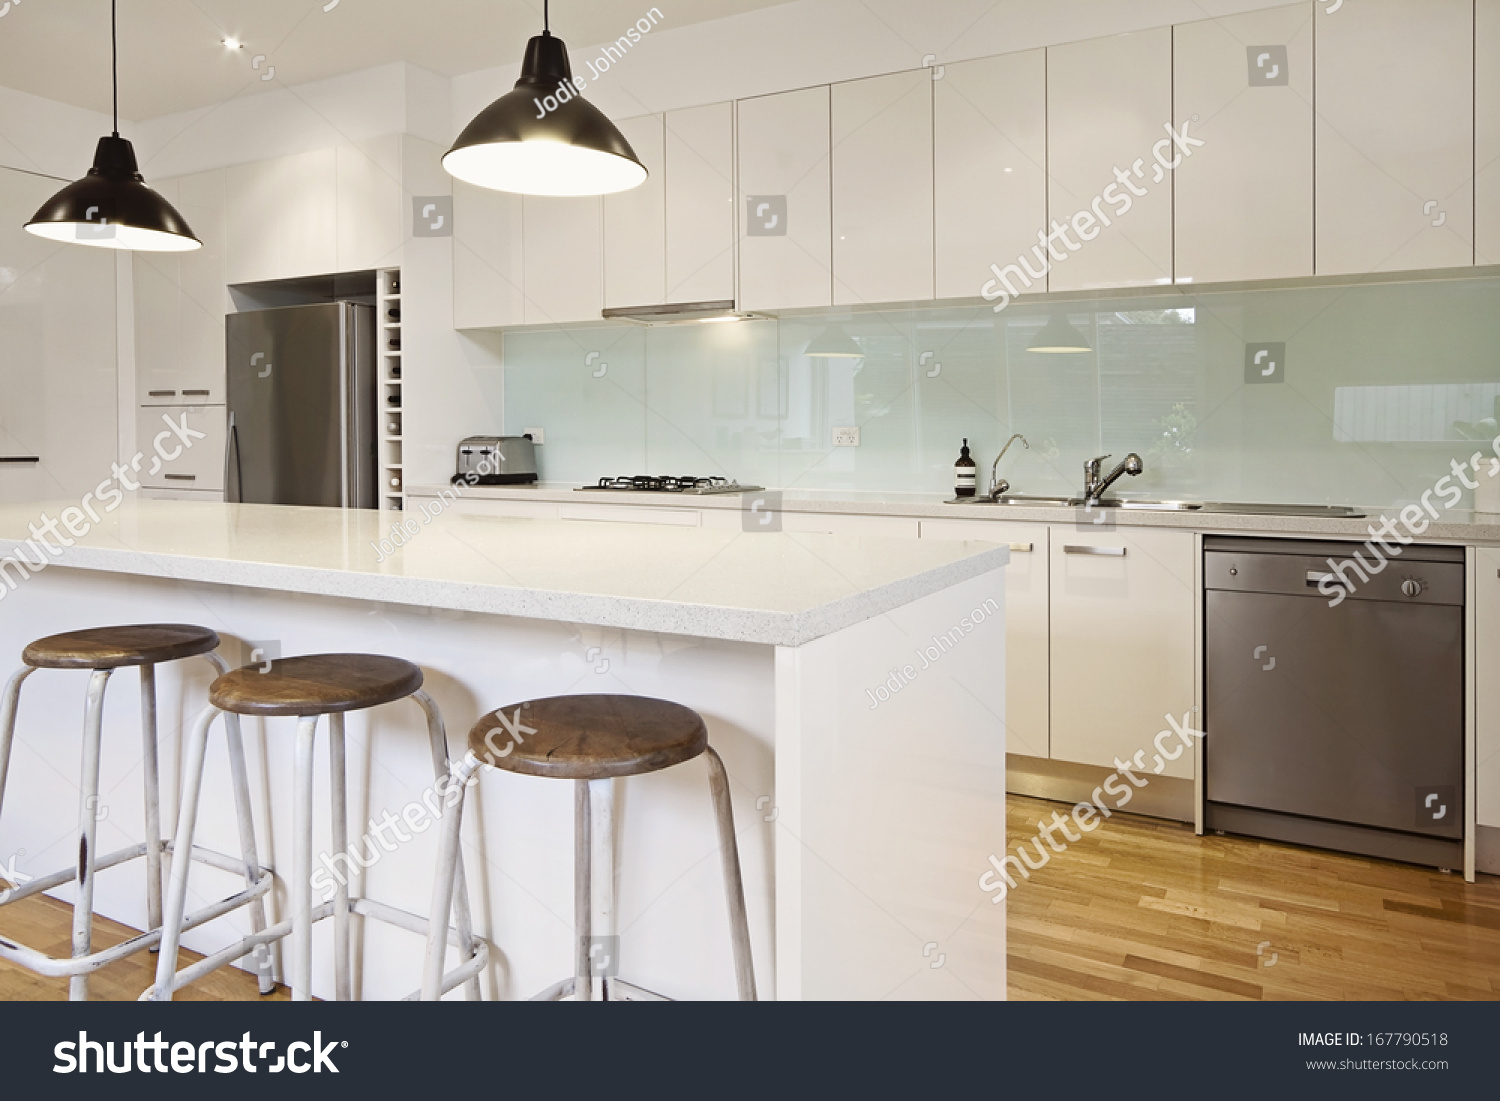 white contemporary kitchen with island and bar stools stock photo 167790518 shutterstock. Black Bedroom Furniture Sets. Home Design Ideas